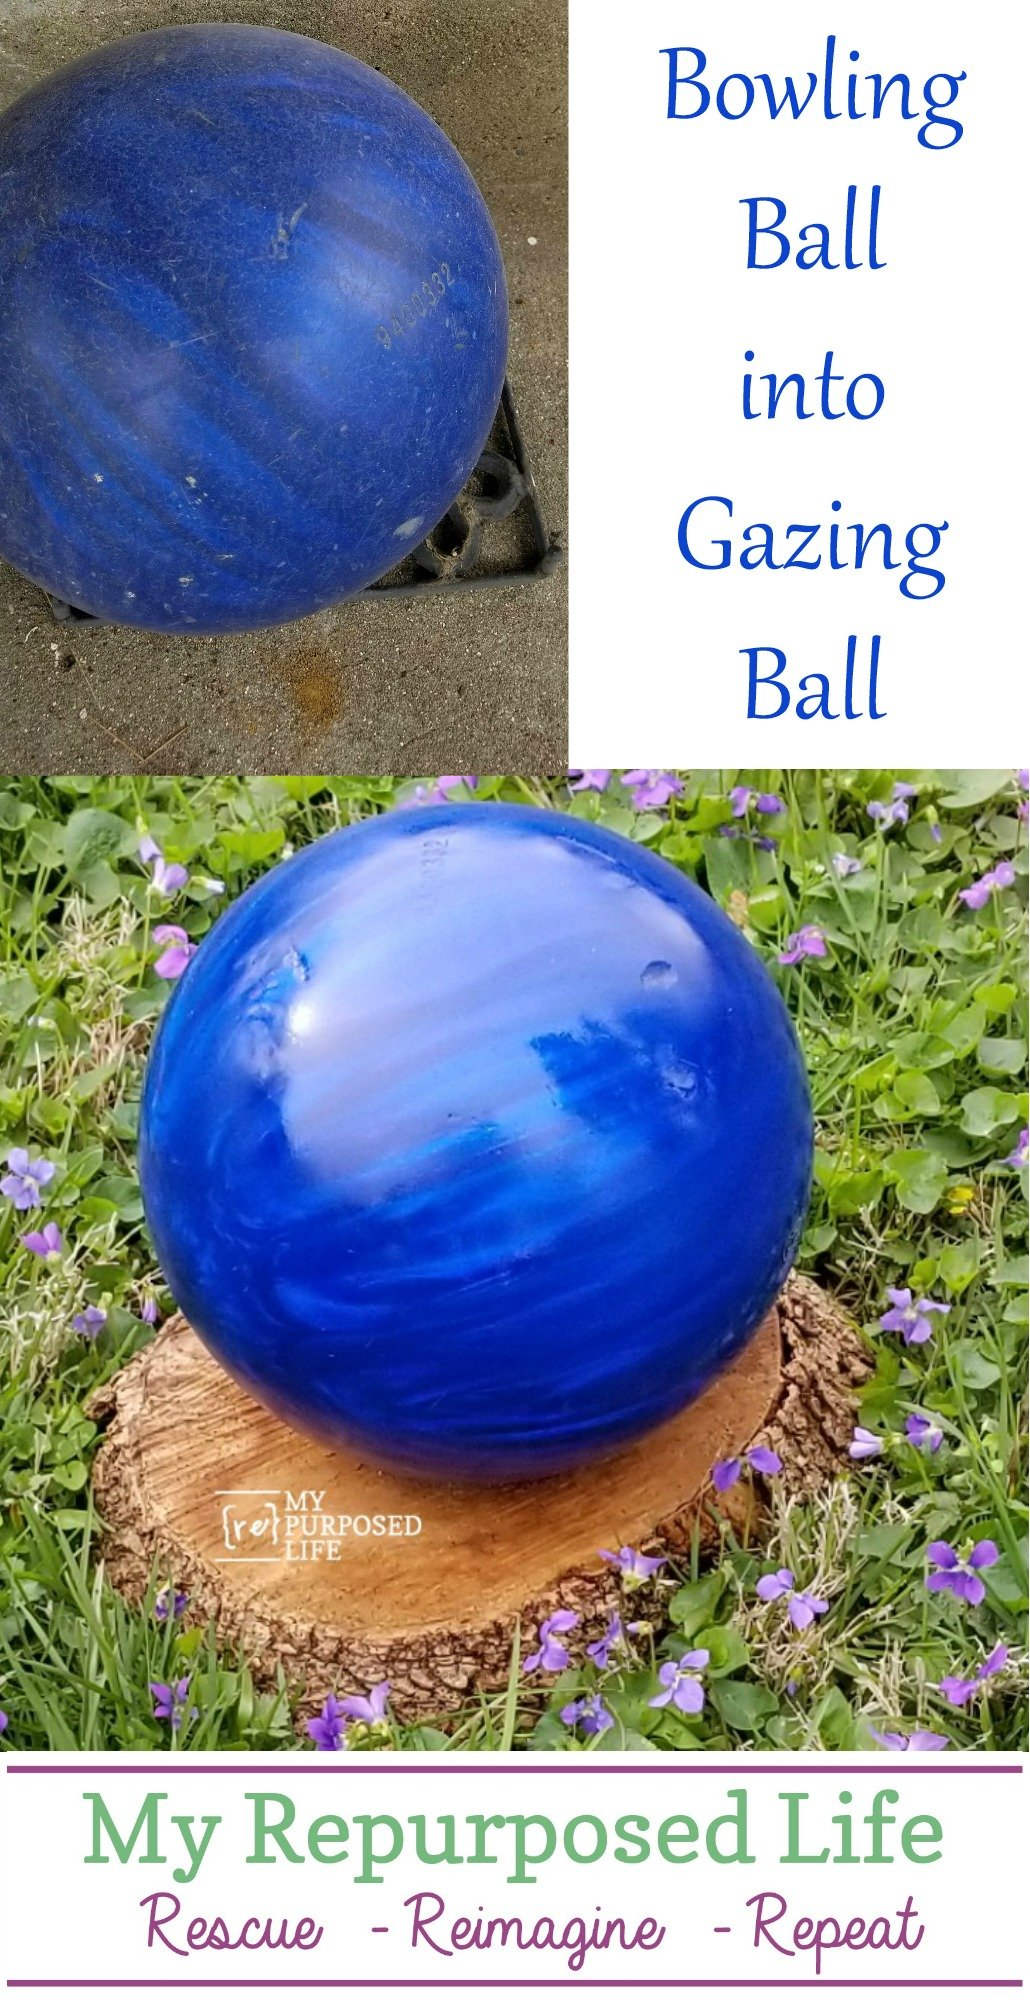 How to make a diy gazing ball using an old bowling ball. Maybe you have one in the closet? Bring it out, shine it up and put it in your garden! #MyRepurposedLife #repurposed #upcycle #bowlingball #garden #diy #gazingball via @repurposedlife